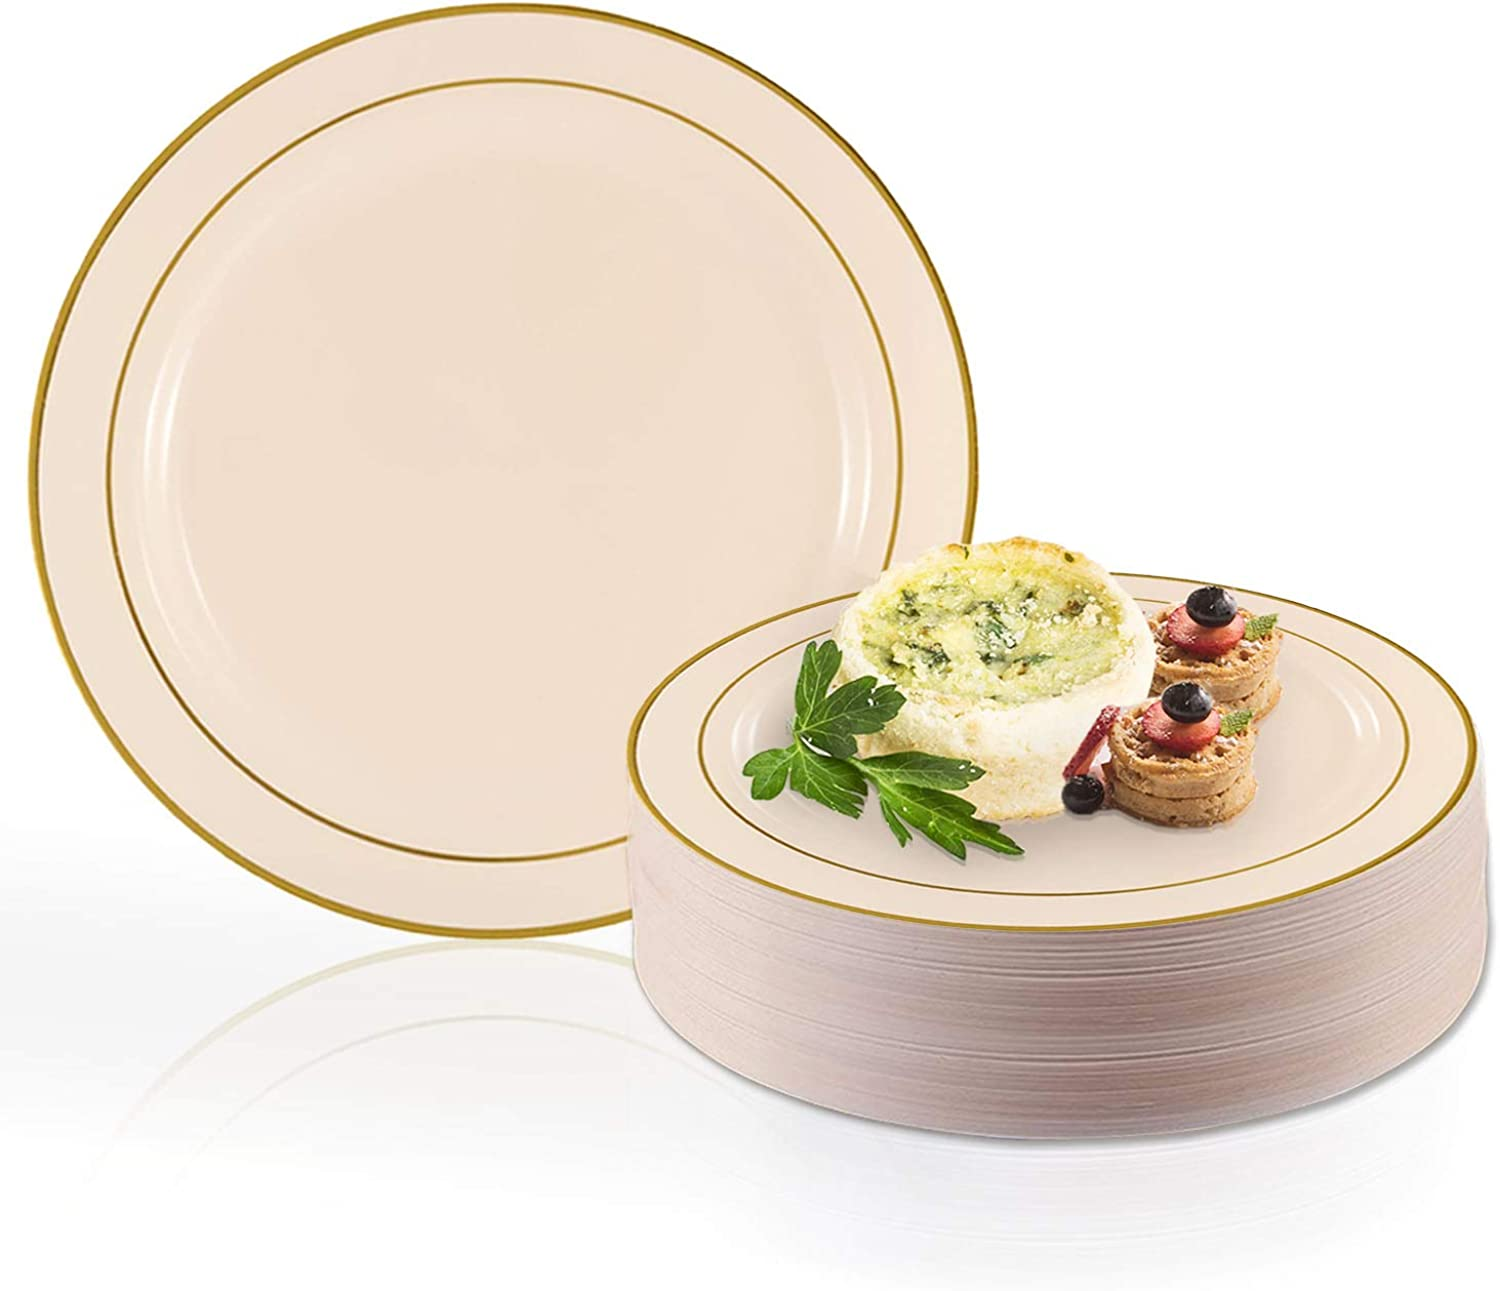 Elegant Disposable Plastic Dessert Plate Set - Heavy Duty Round Ivory with gold Salad Plates - Reusable Party Plates For Wedding, Christmas, Thanksgiving, Birthday & Other Occasions - 120 Cake Plates